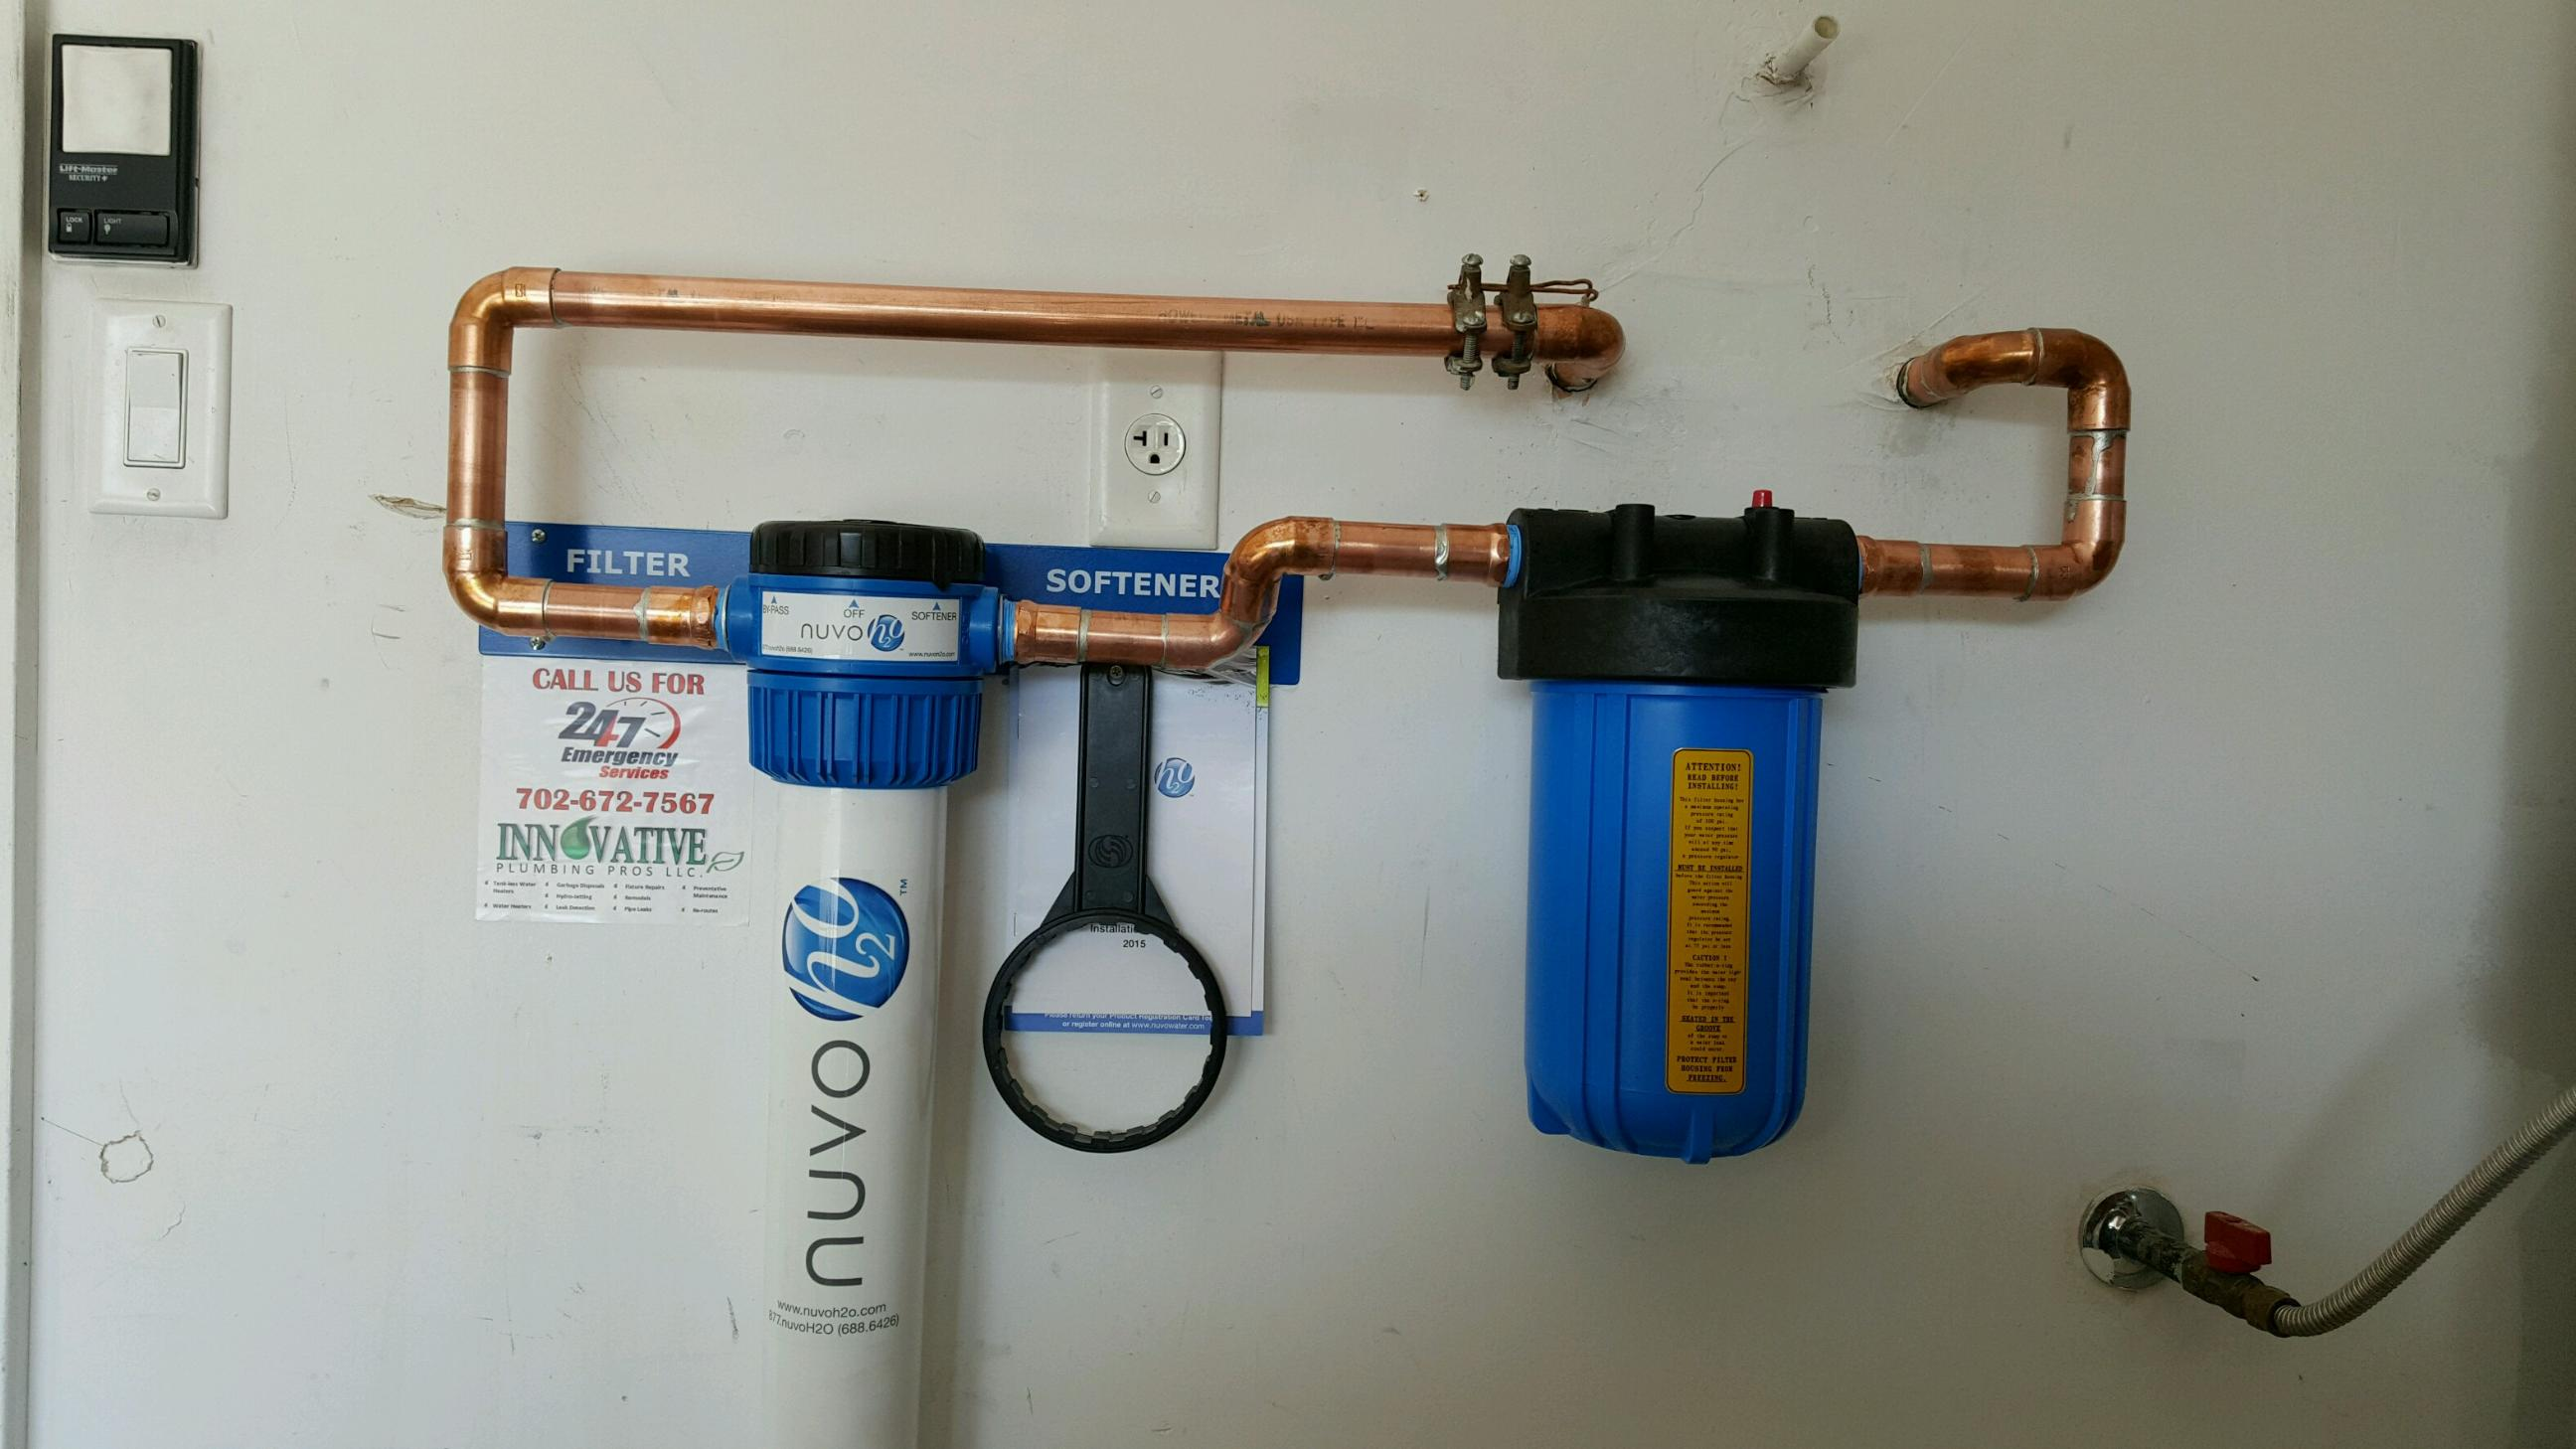 How To Hook Up A Water Softener Water Softeners Installed By Our Plumber Innovative Plumbing Pros